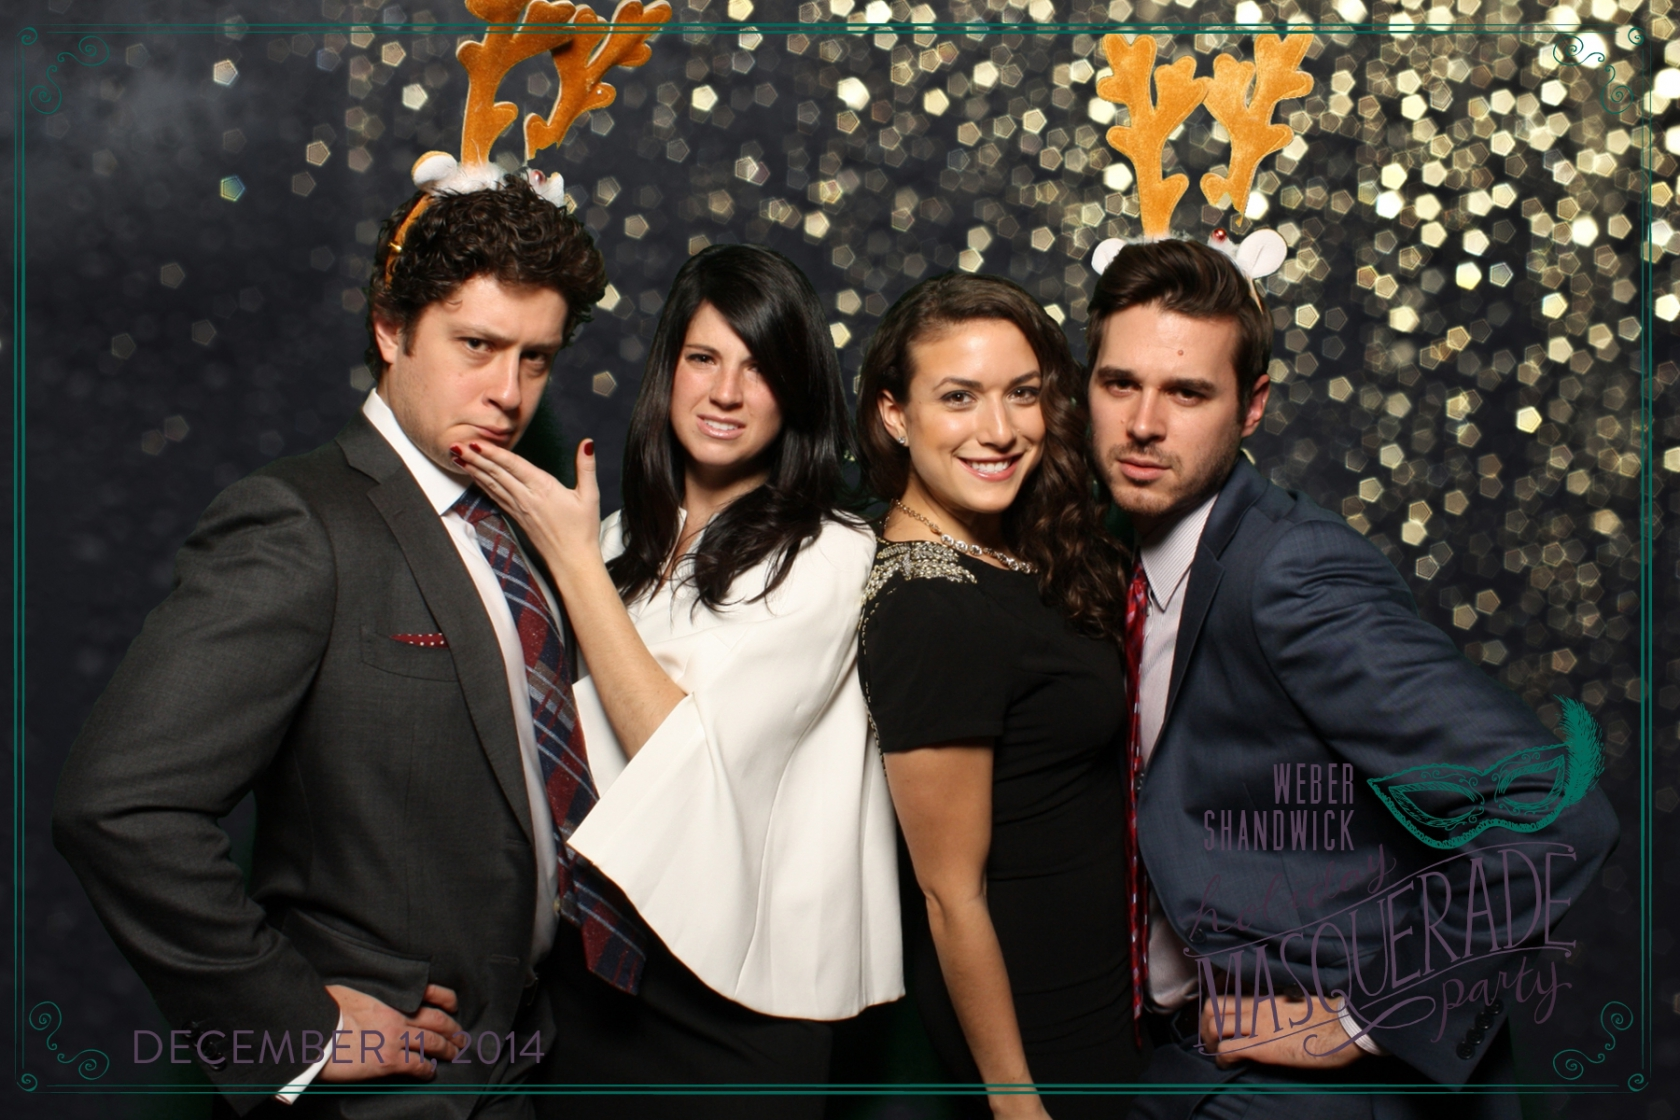 reindeer antler props make perfect photobooth picture weber shandwick annual company holiday party